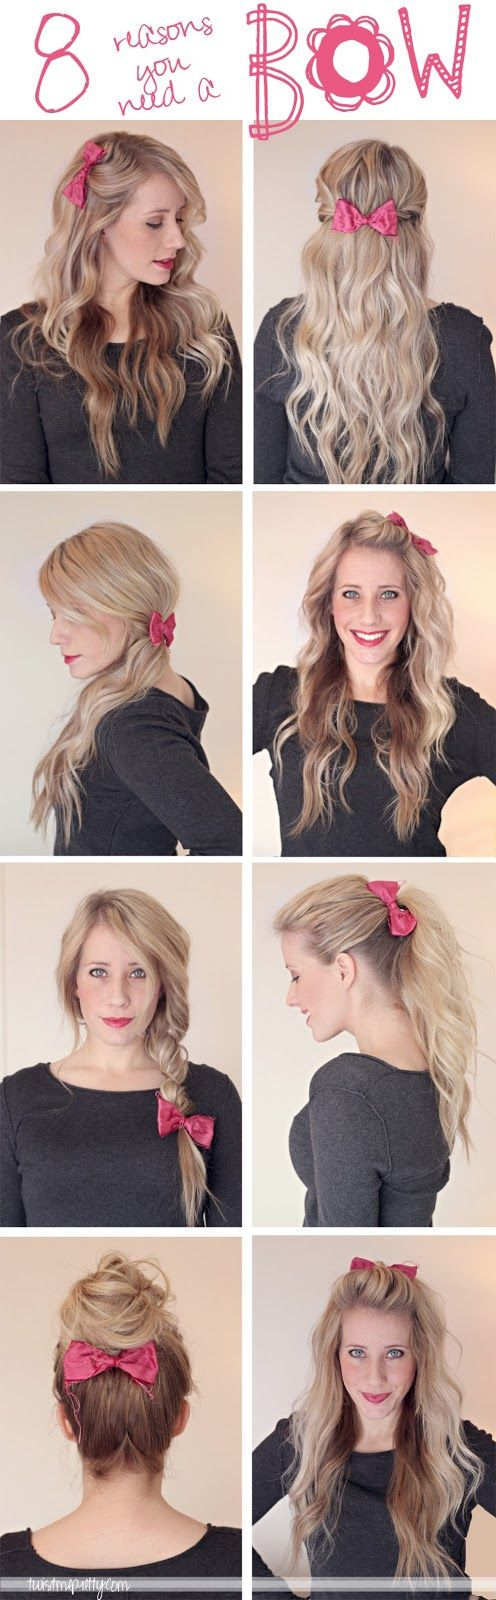 Phenomenal 1000 Ideas About Bow Hairstyle Tutorial On Pinterest Hair Bow Hairstyles For Men Maxibearus